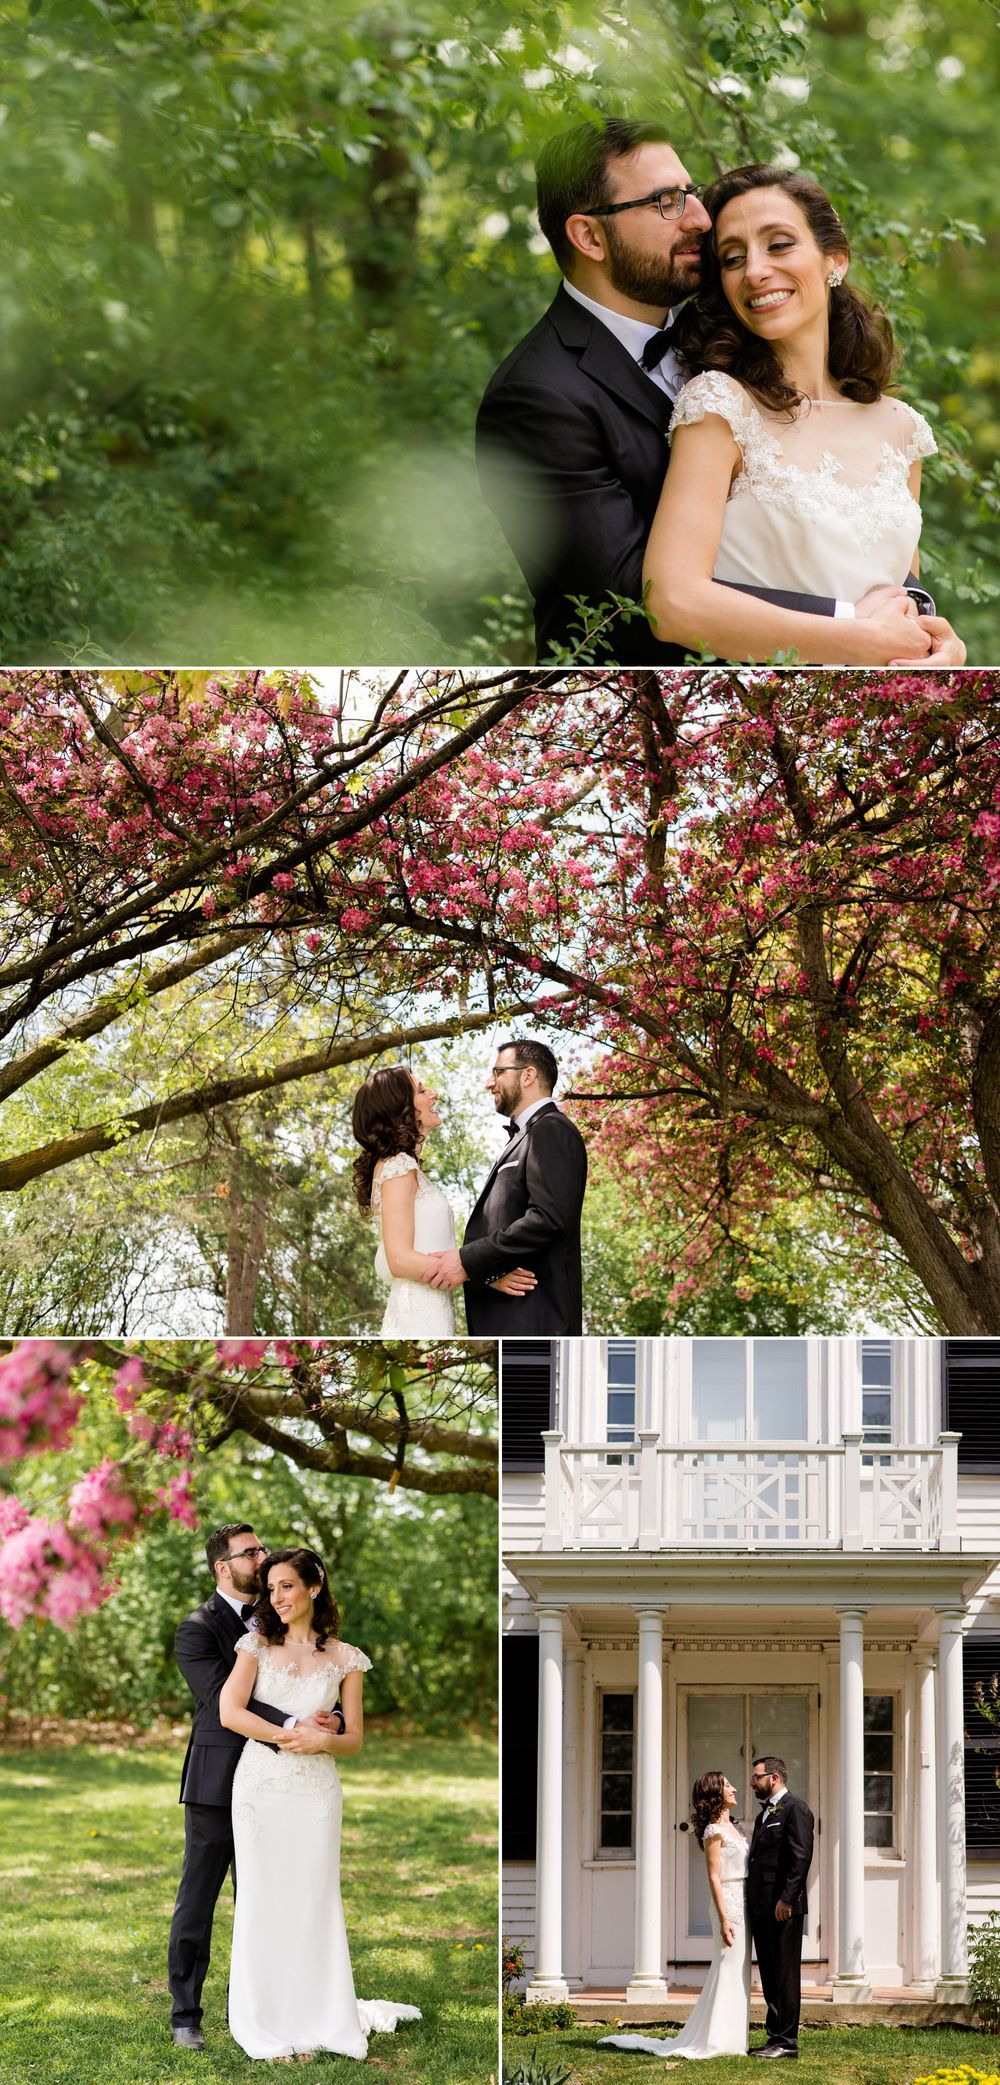 The couple having their first look photos done at Billings Estate Museum